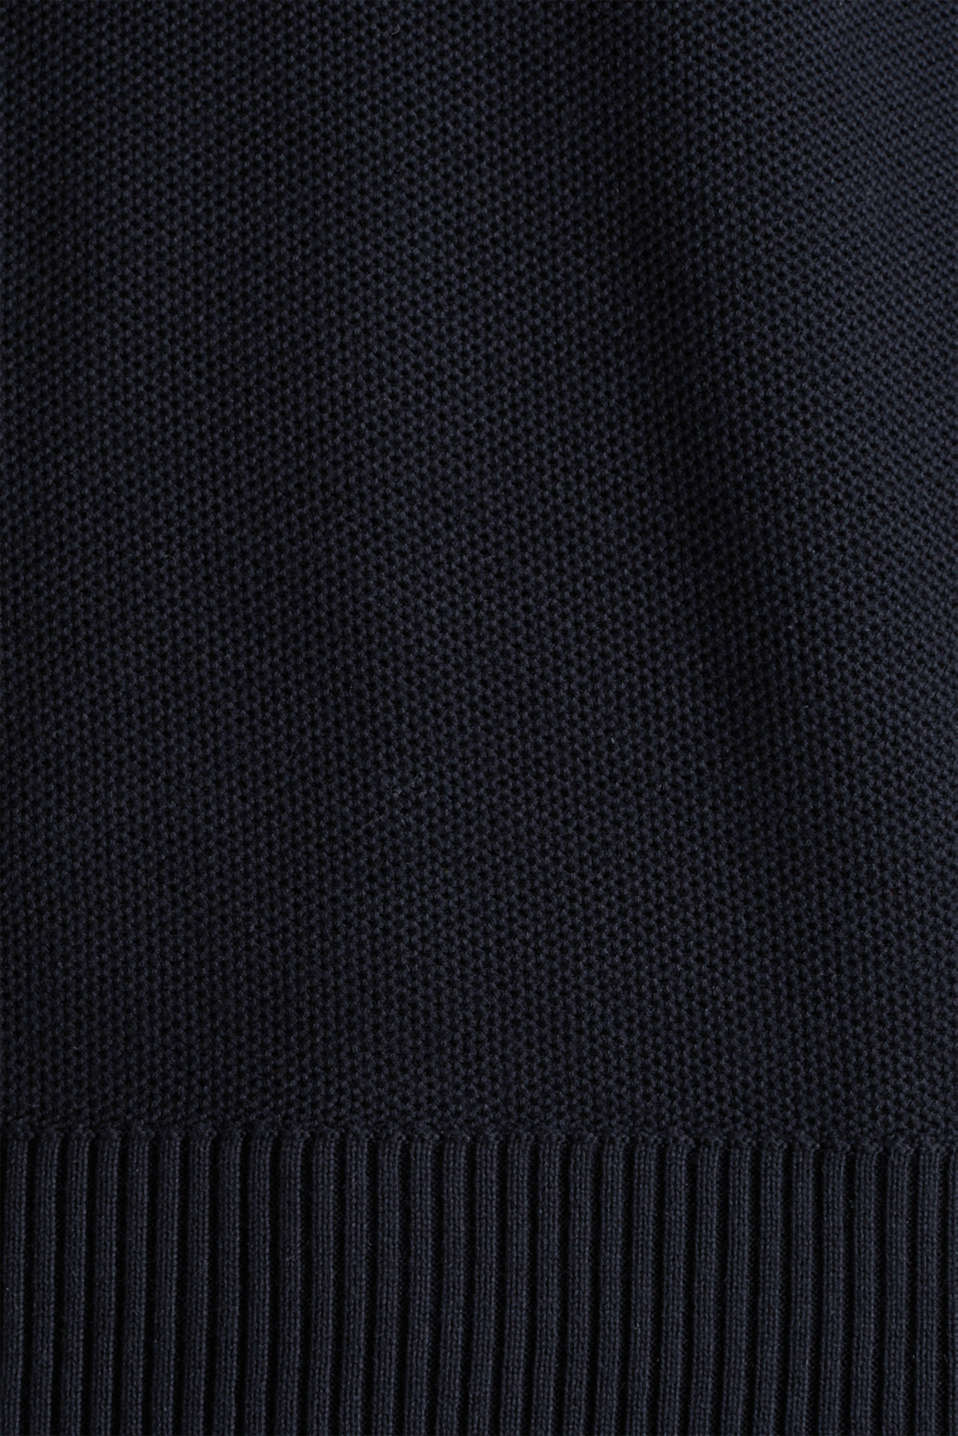 Piqué jumper, 100% cotton, BLACK, detail image number 3